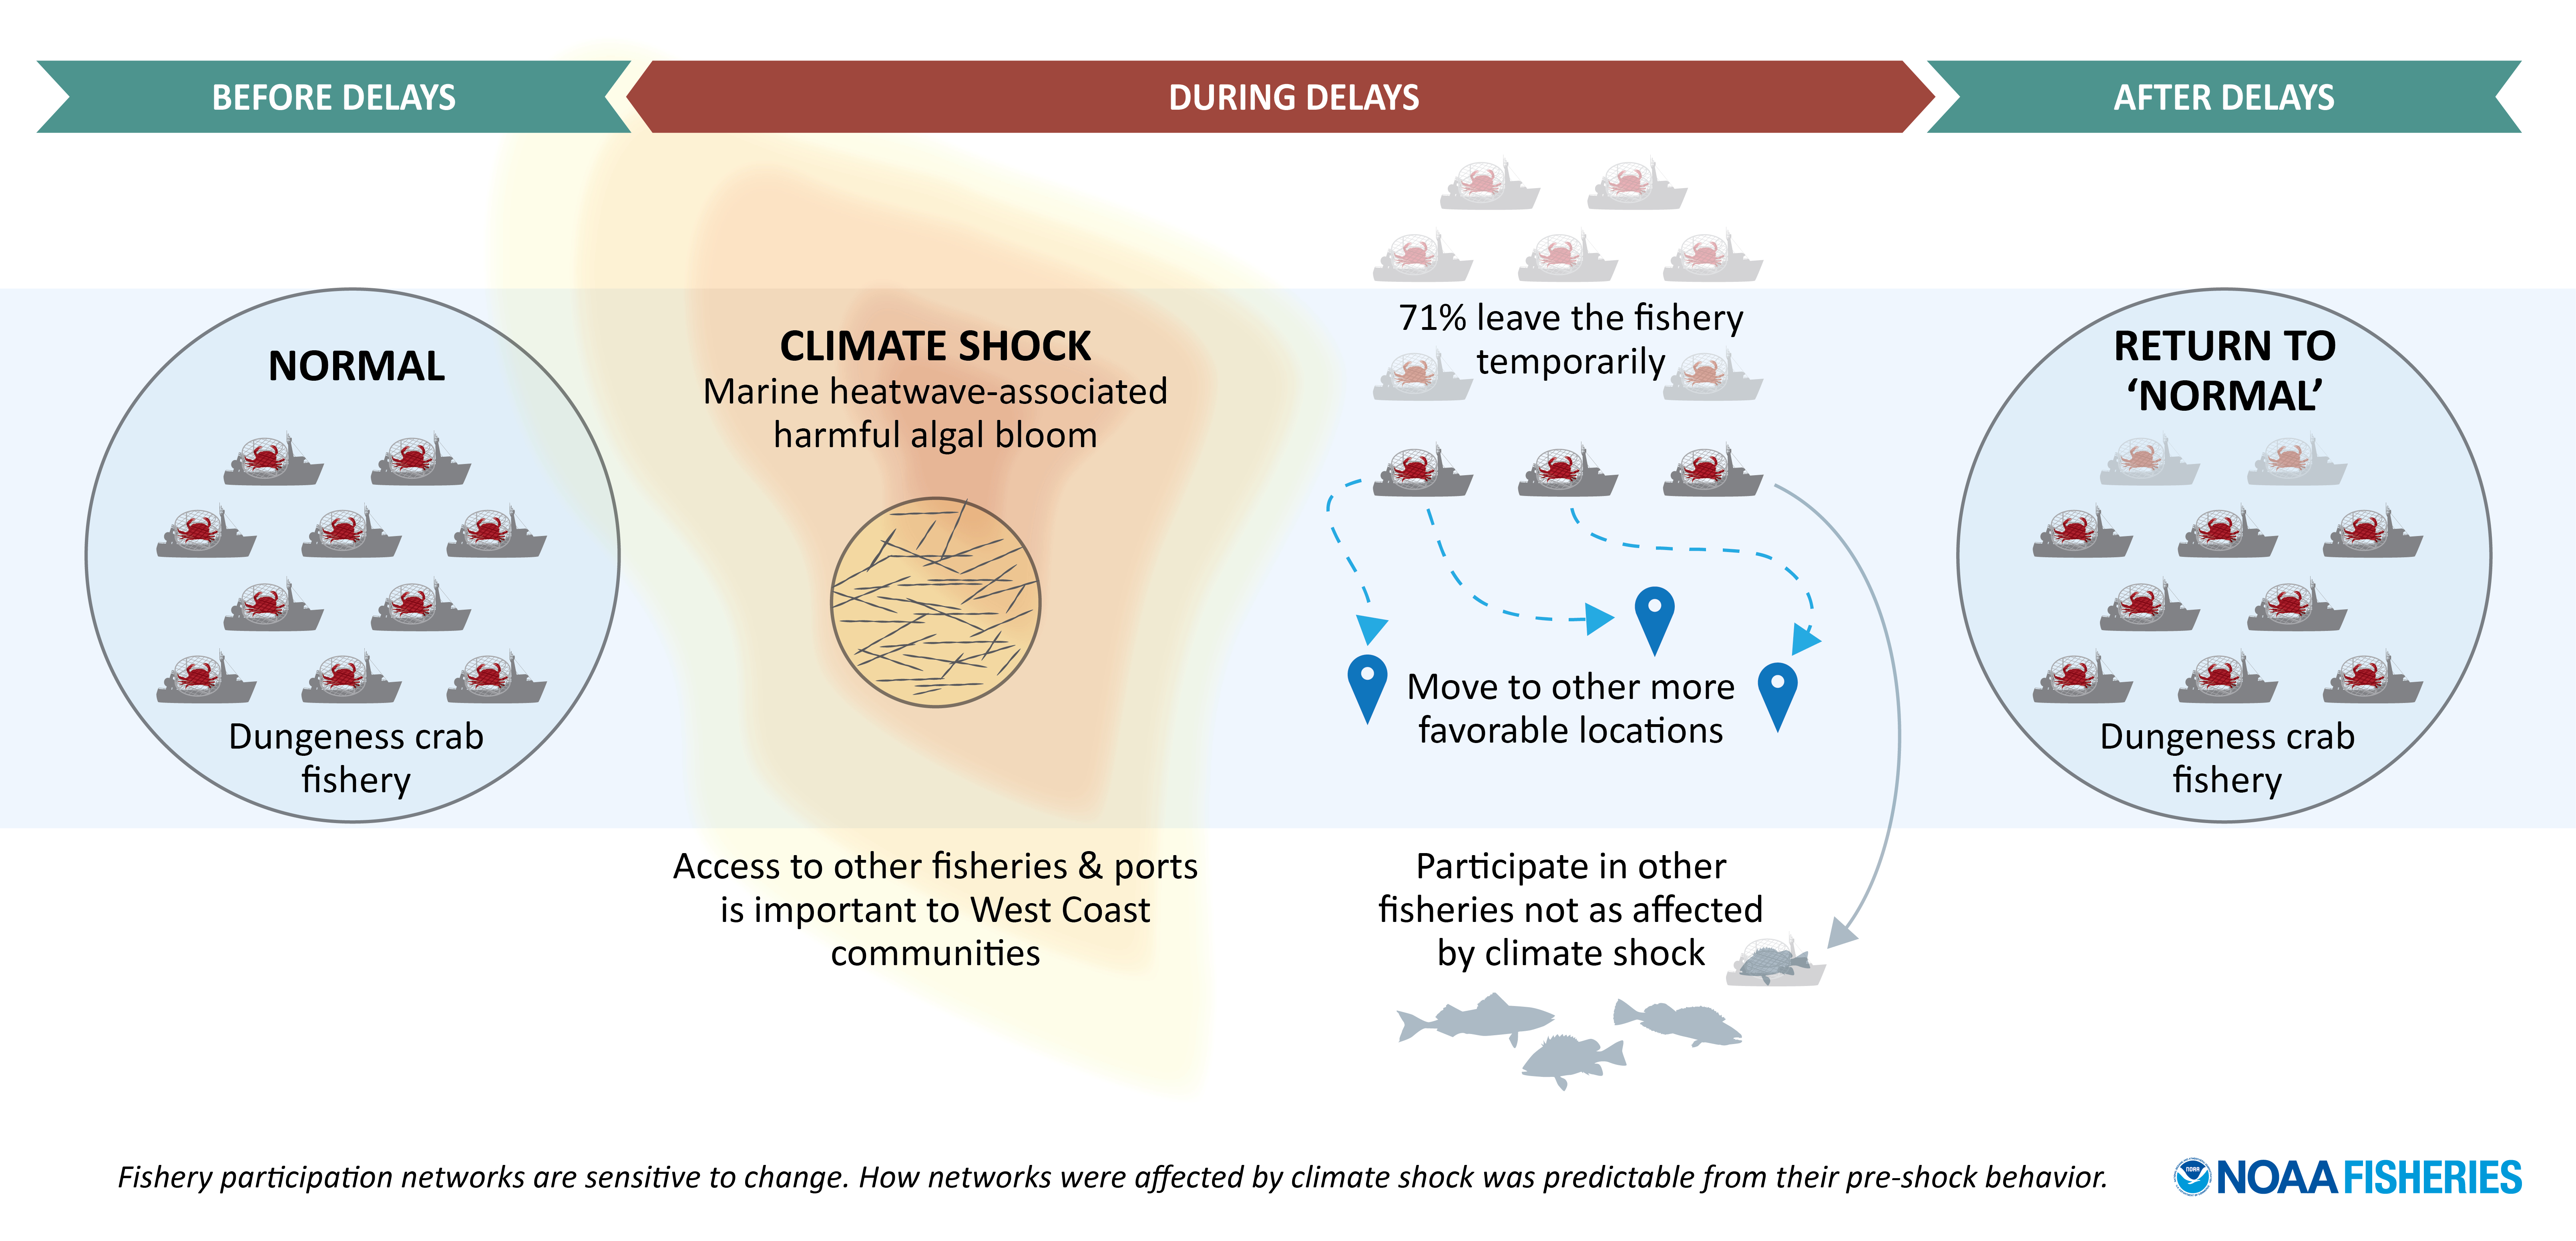 Dungeness crab fishery before, during and after the climate shock.